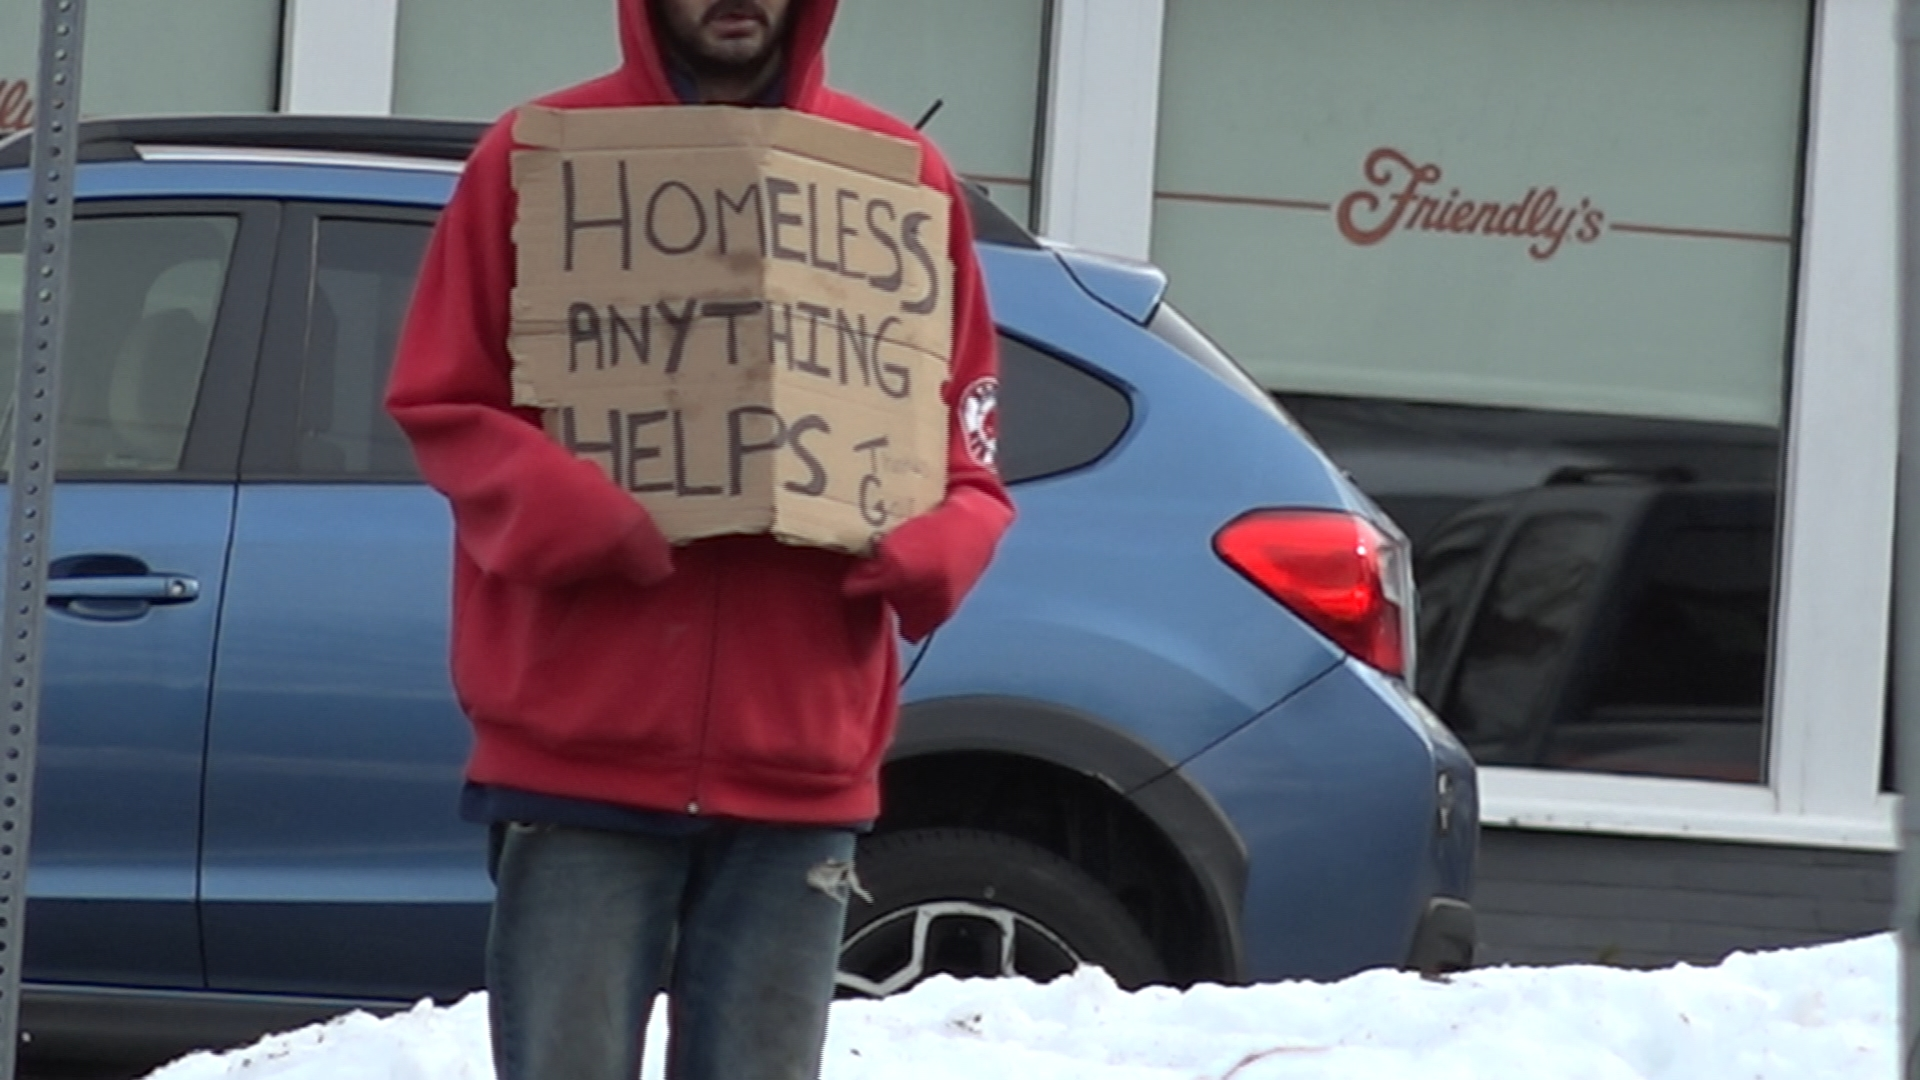 In part 2 of a series on homelessness in western Mass, we take viewers inside homeless shelters in Berkshire and Franklin counties.